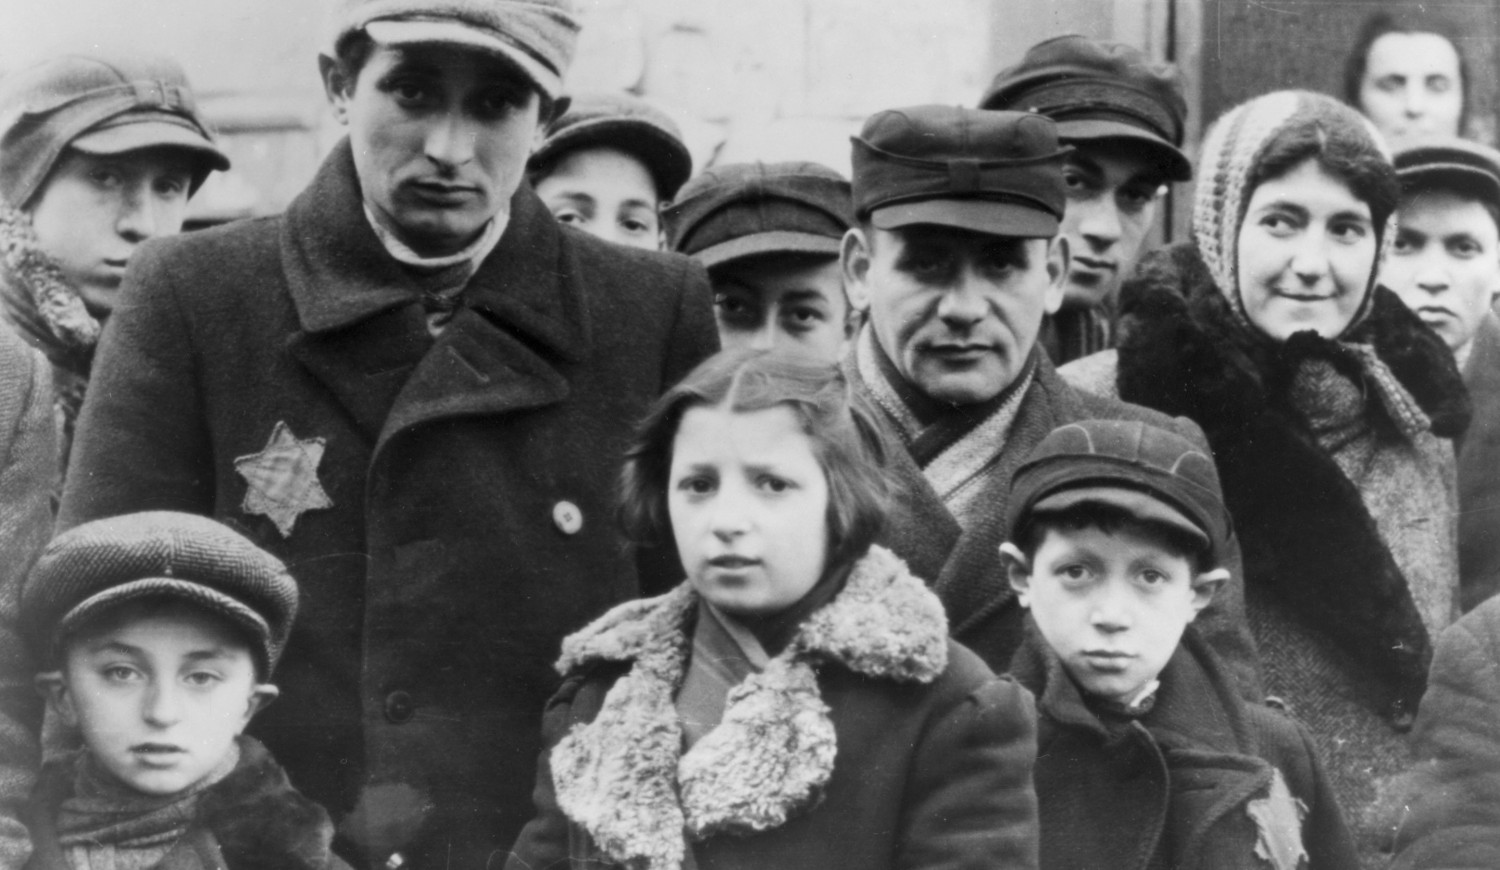 Jews wearing Star of David badges, Lodz Ghetto, Poland. The Nazis forced Jews into over-crowded ghettos from which thousands were deported to the death camps. (circa 1940). (Photo by Jewish Chronicle/Heritage Images/Getty Images)